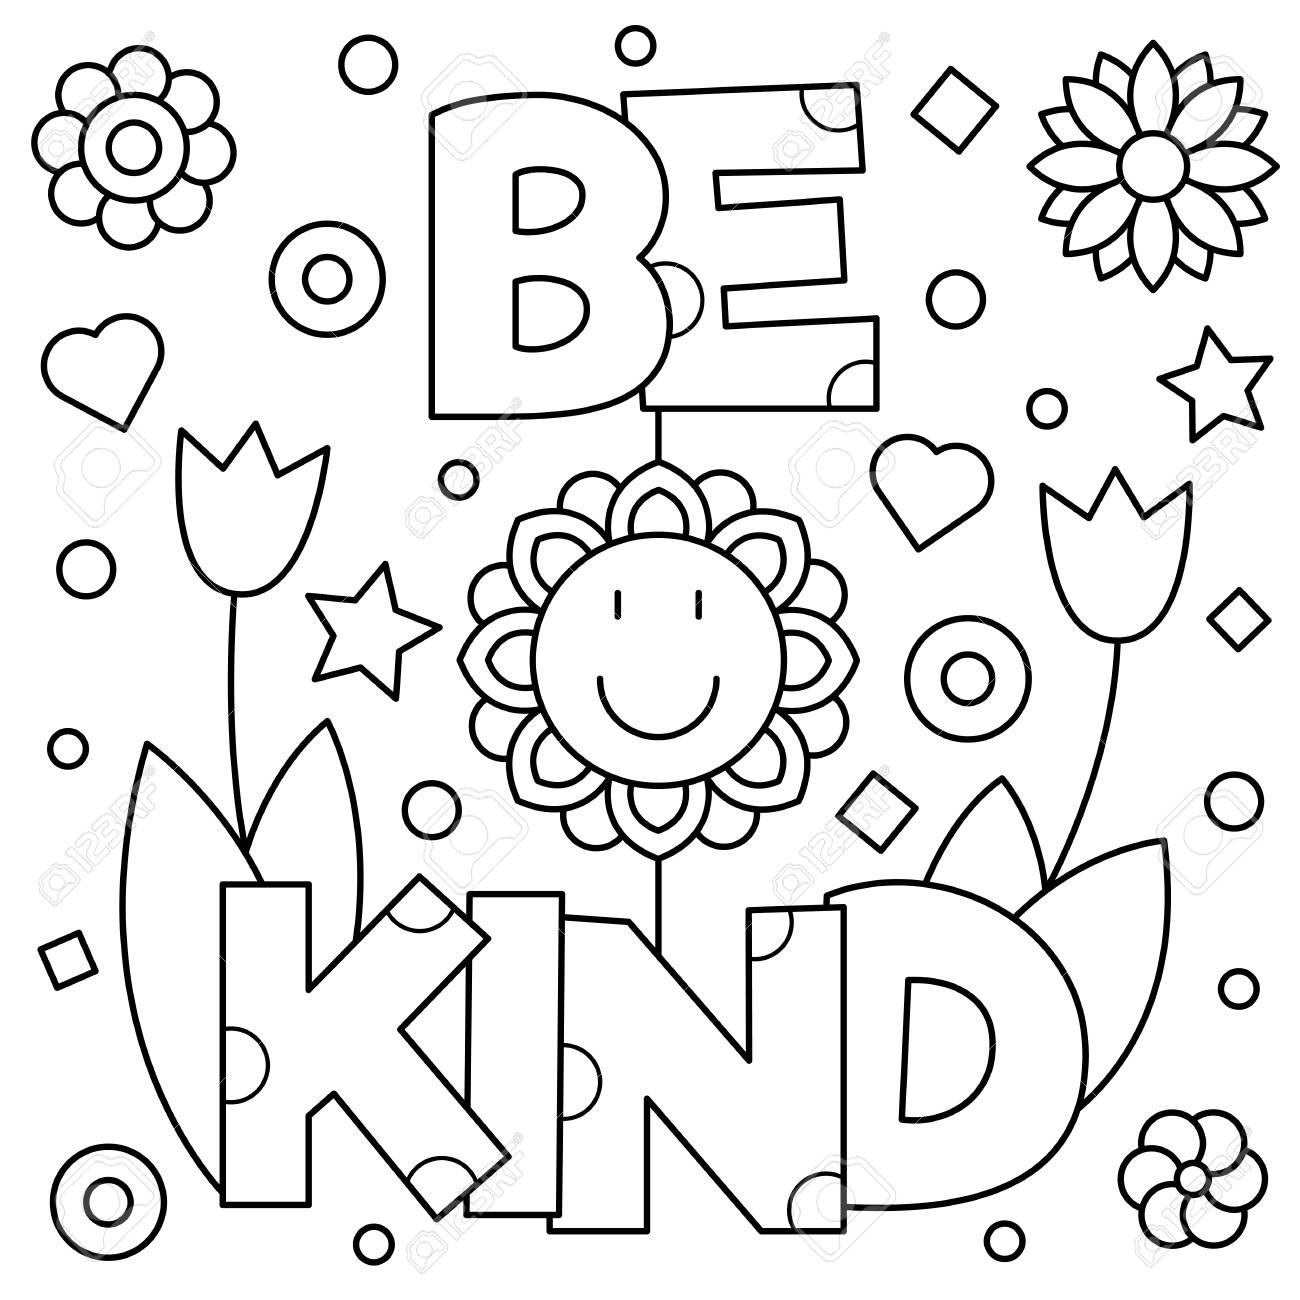 coloring sheets kindness kindness quote coloring pages doodle art alley coloring kindness sheets